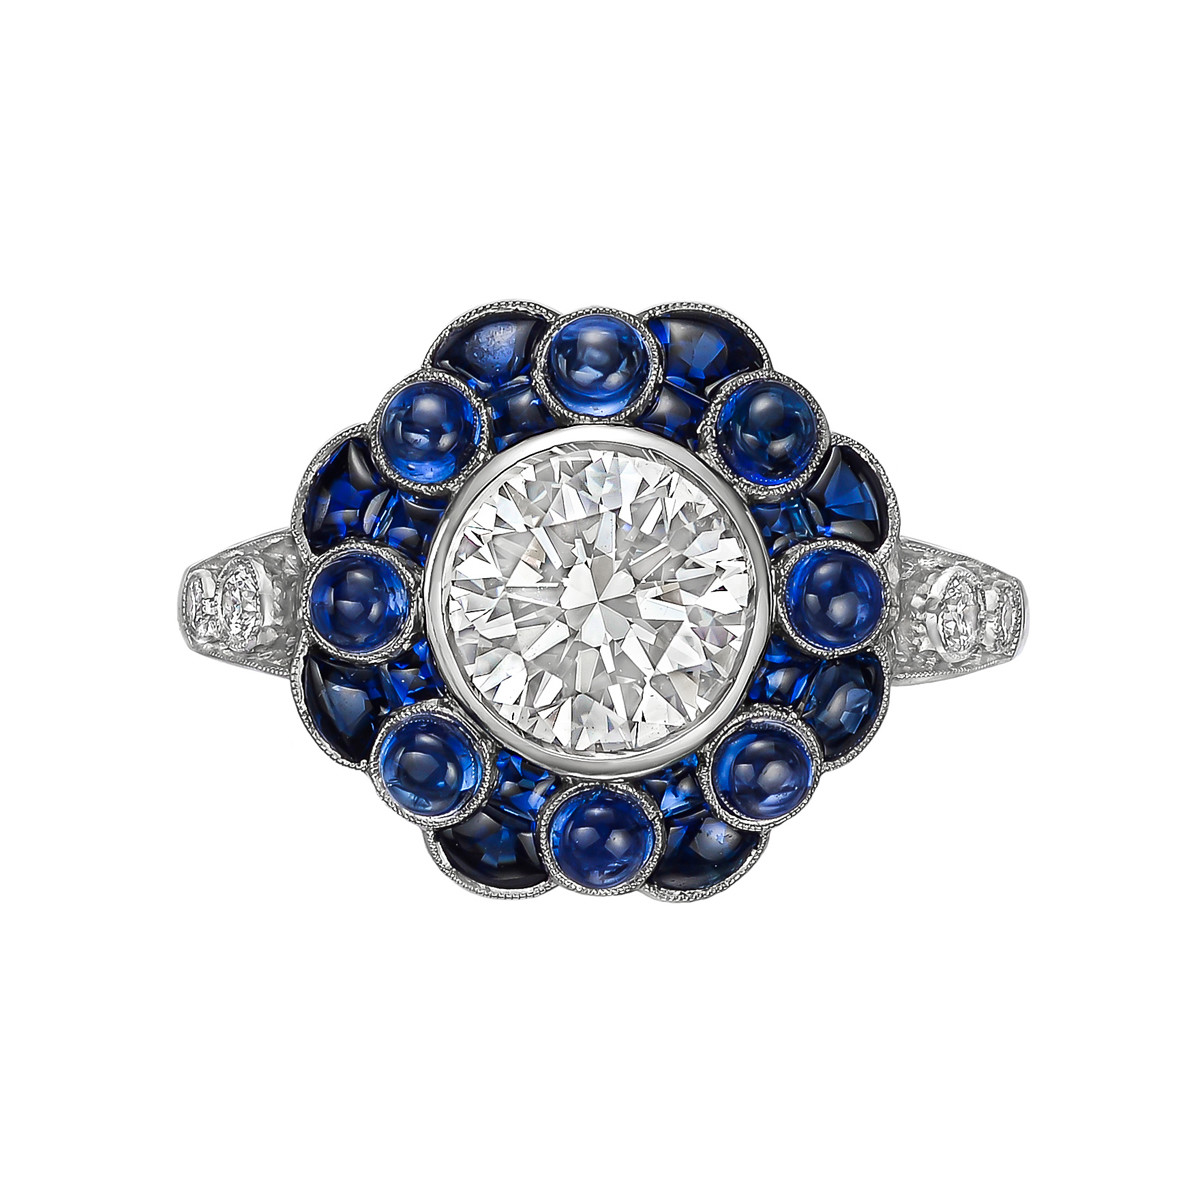 1.51ct Round Diamond & Sapphire Flower Ring